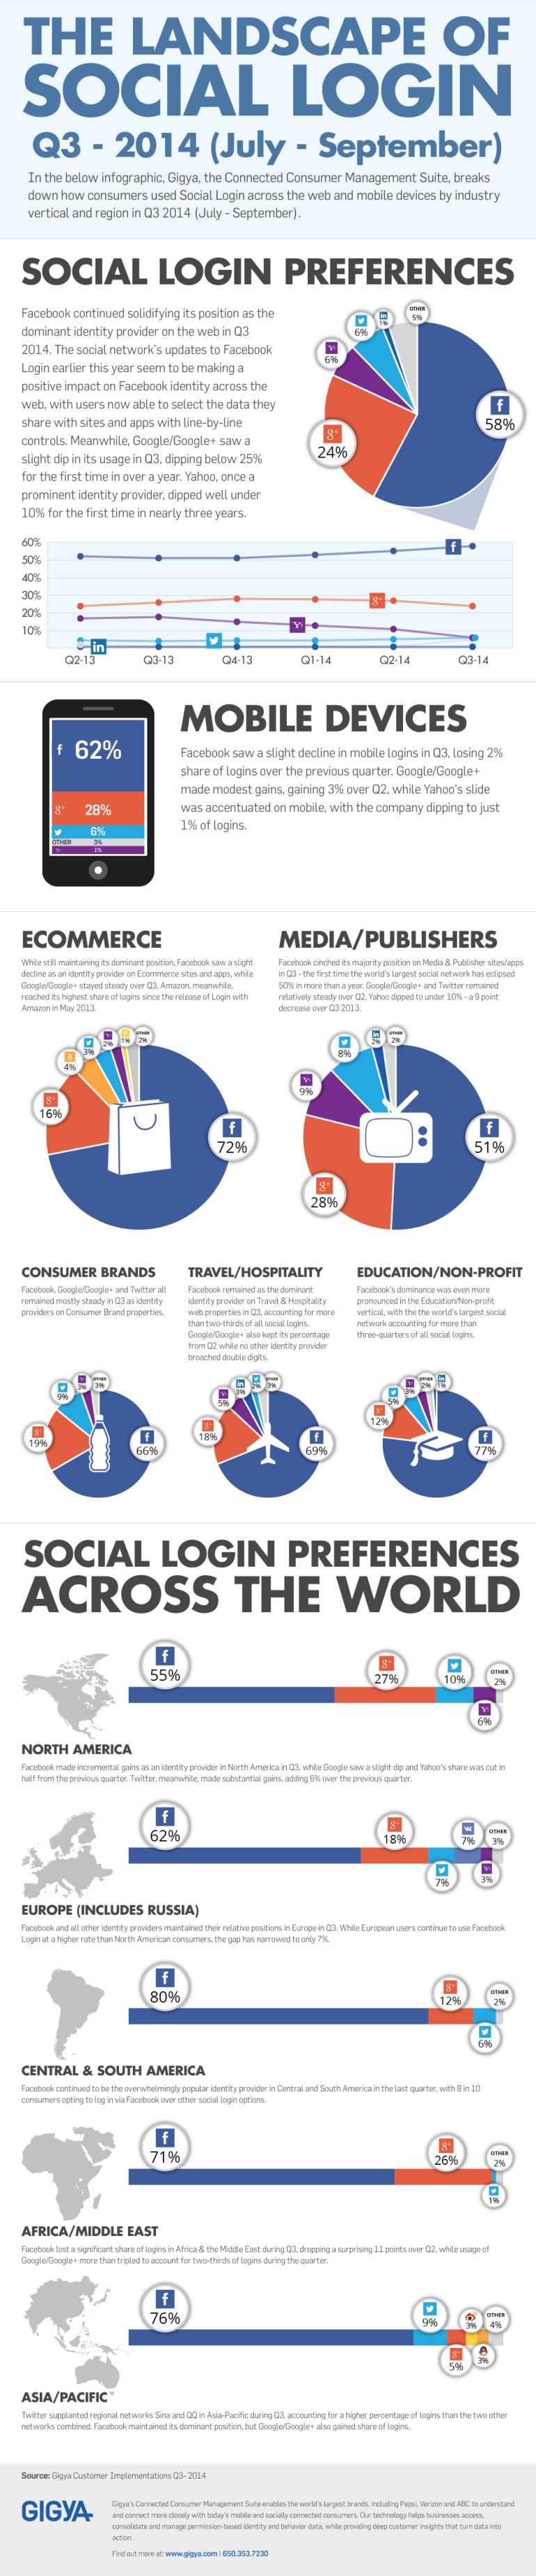 The Landscape of Social Login